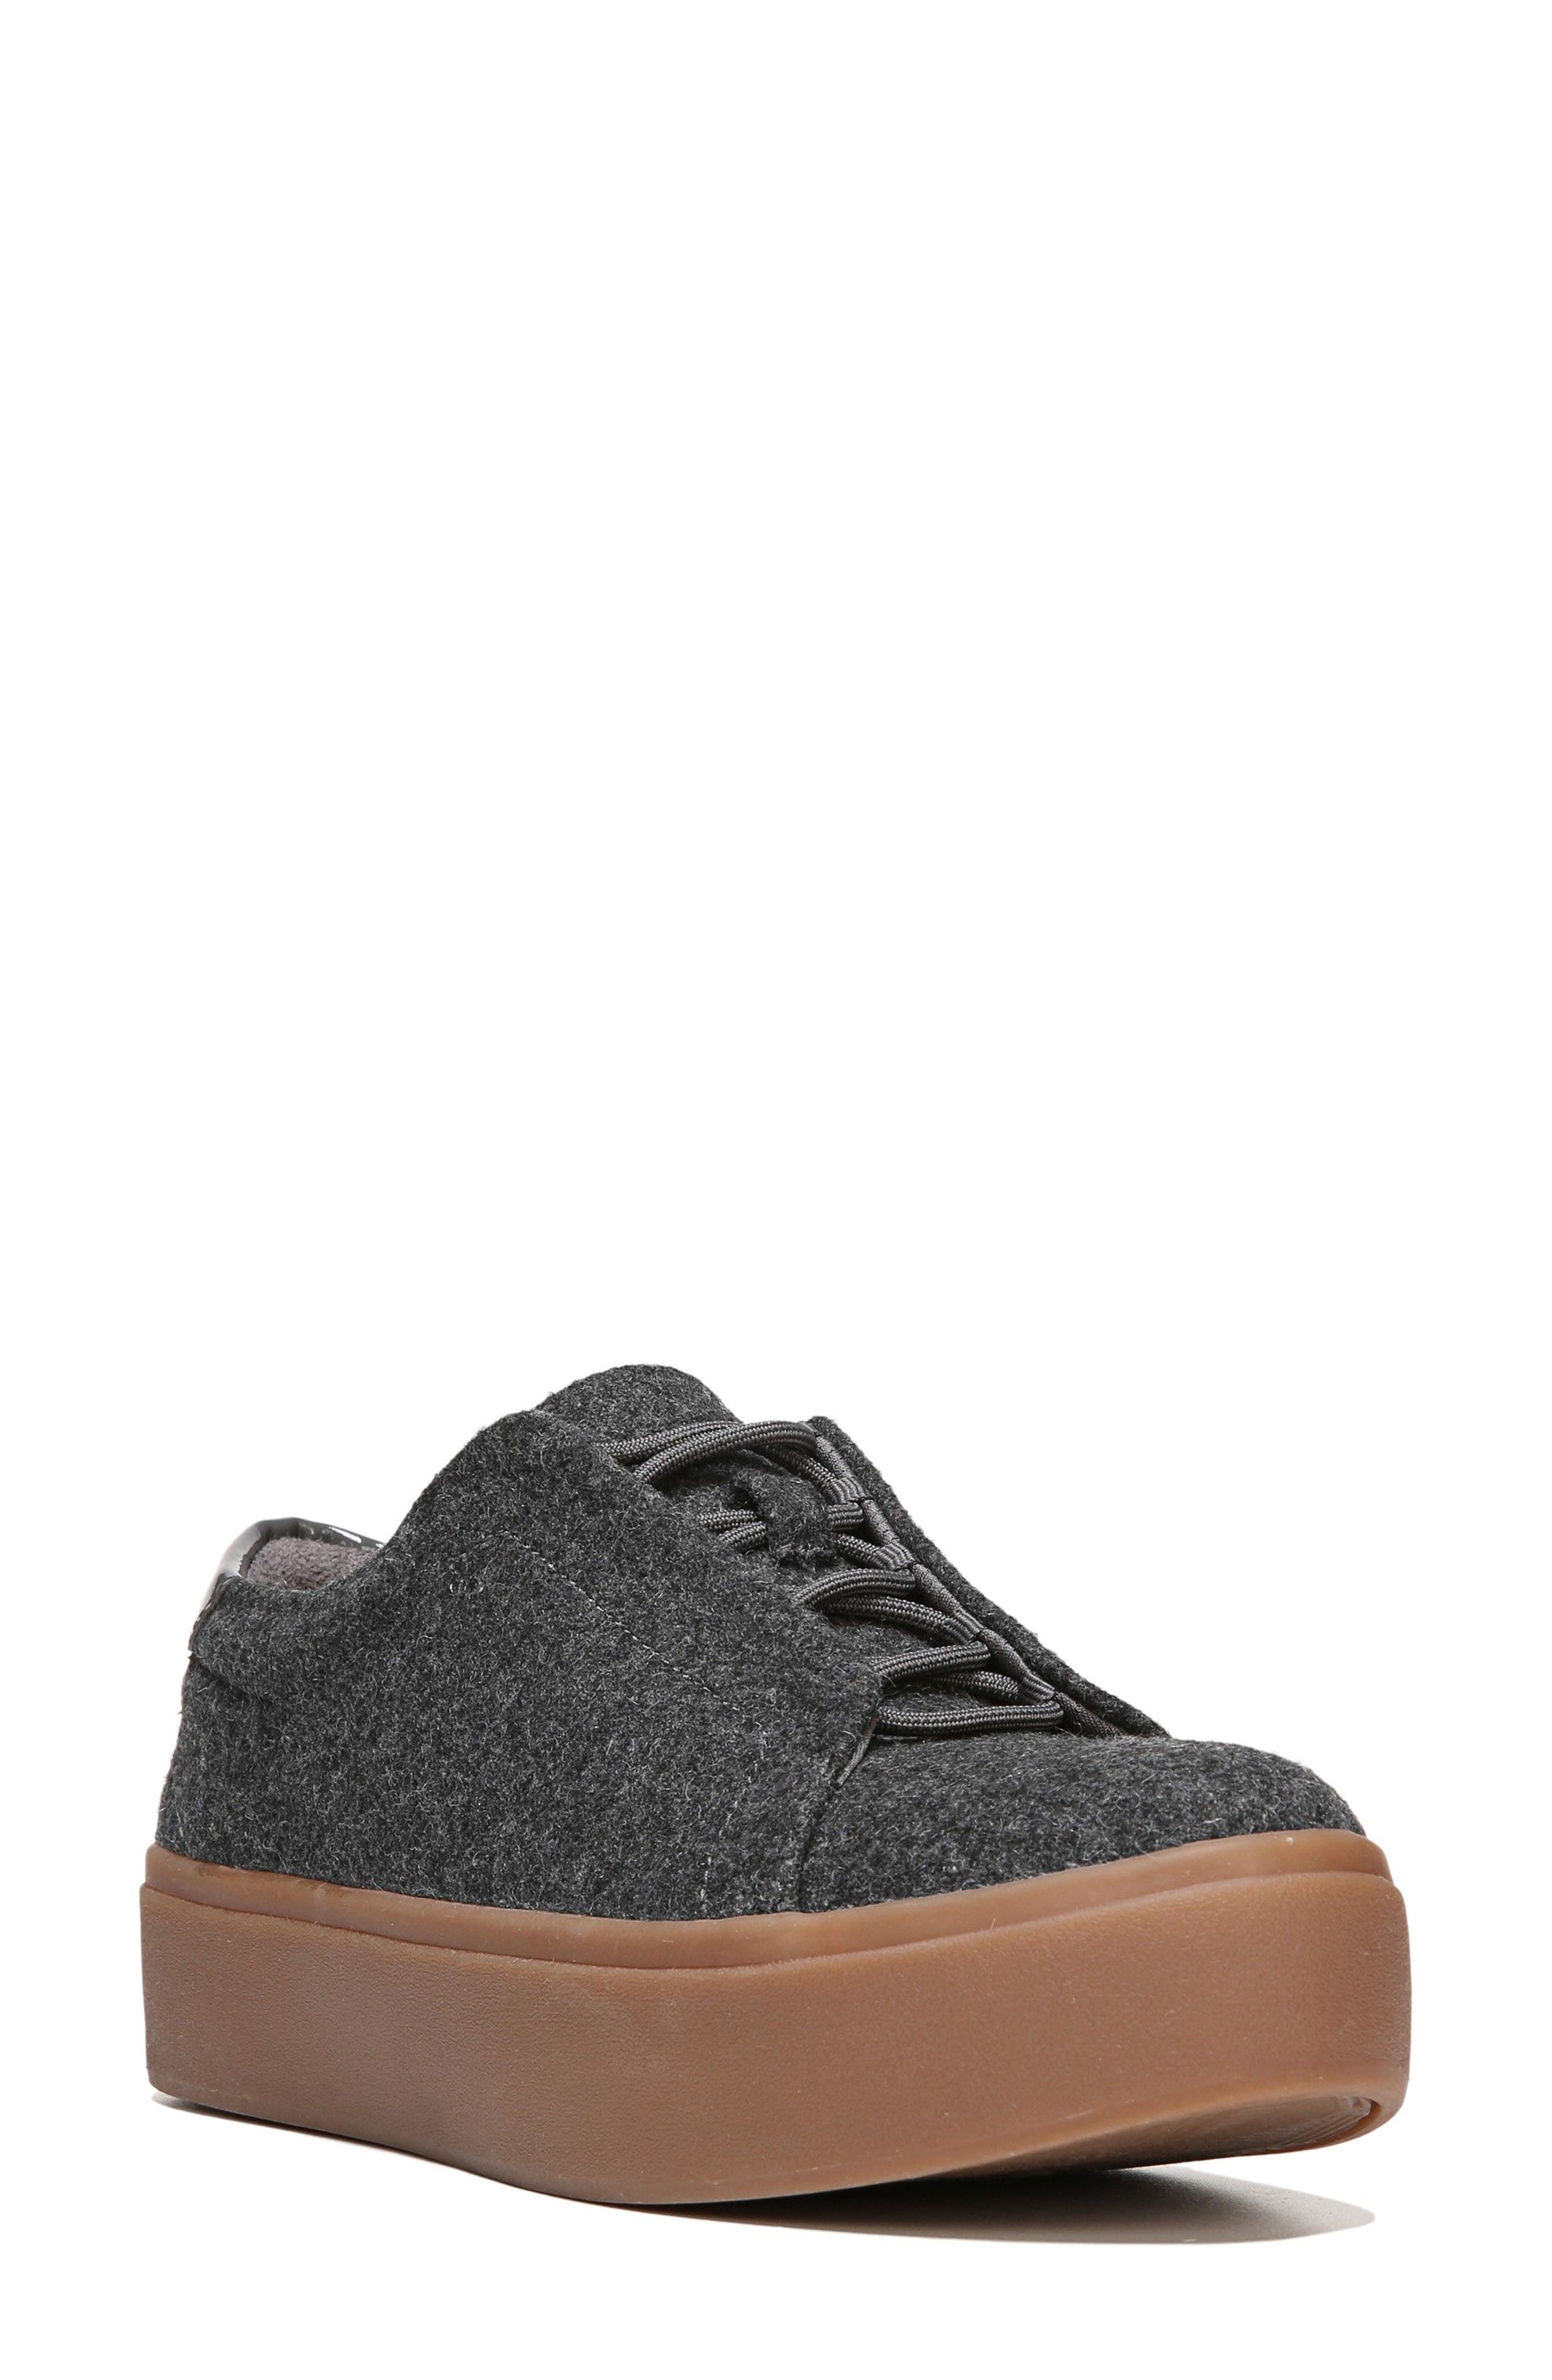 Abbot Sneaker,                         Main,                         color, Charcoal Fabric